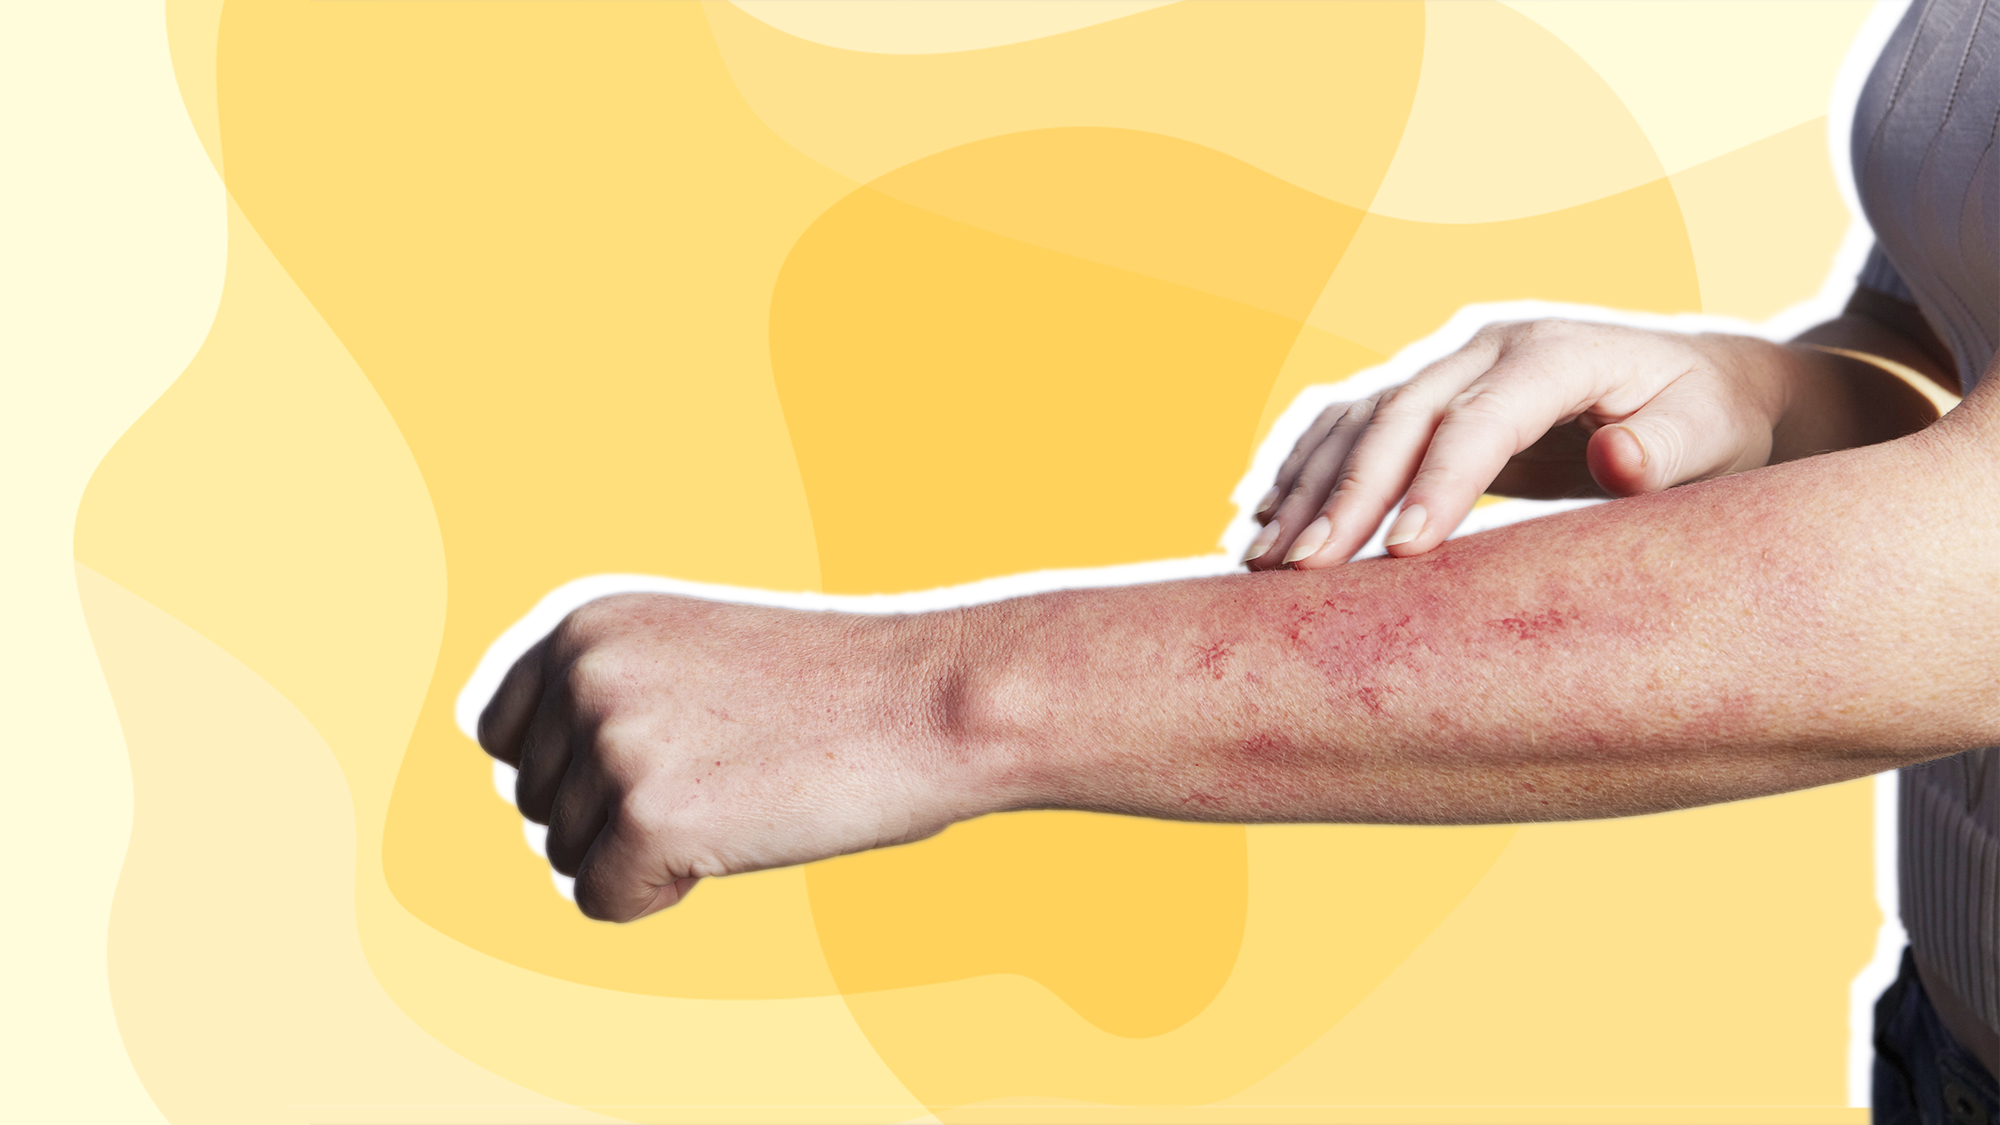 Hand feeling rash on arm. stress-rash